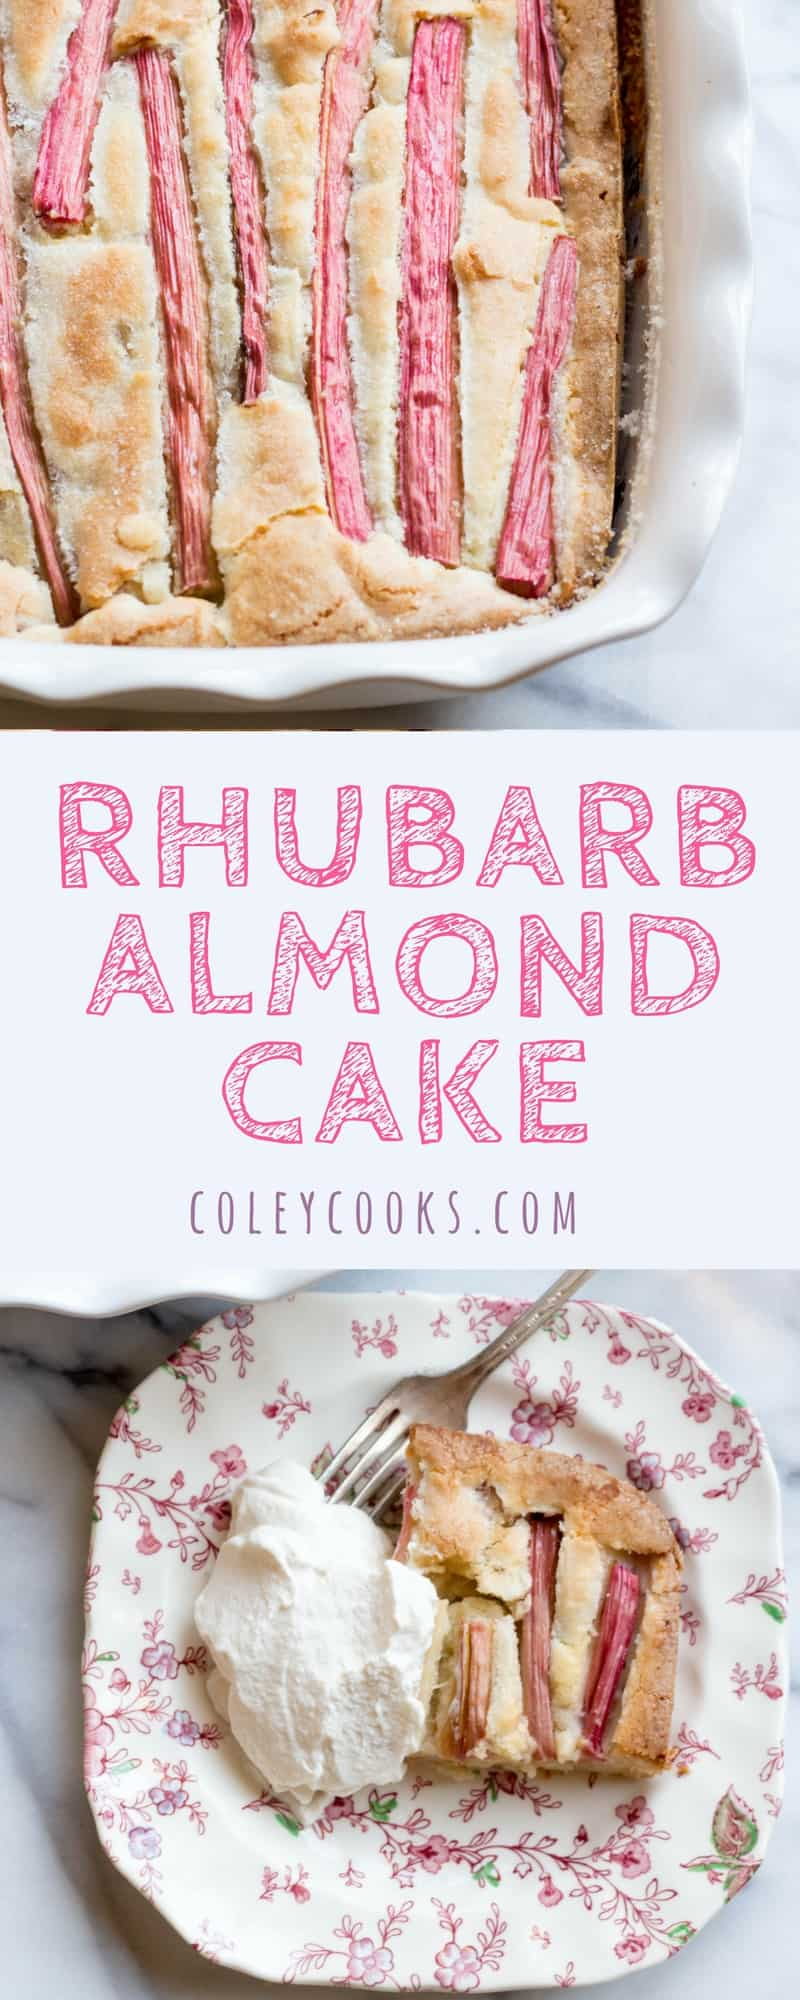 RHUBARB ALMOND CAKE with BOURBON WHIPPED CREAM|Tangy, dense, and delicious cake flecked with long strips of vibrant rhubarb and finished with boozy bourbon whipped cream. So great for Spring! | ColeyCooks.com